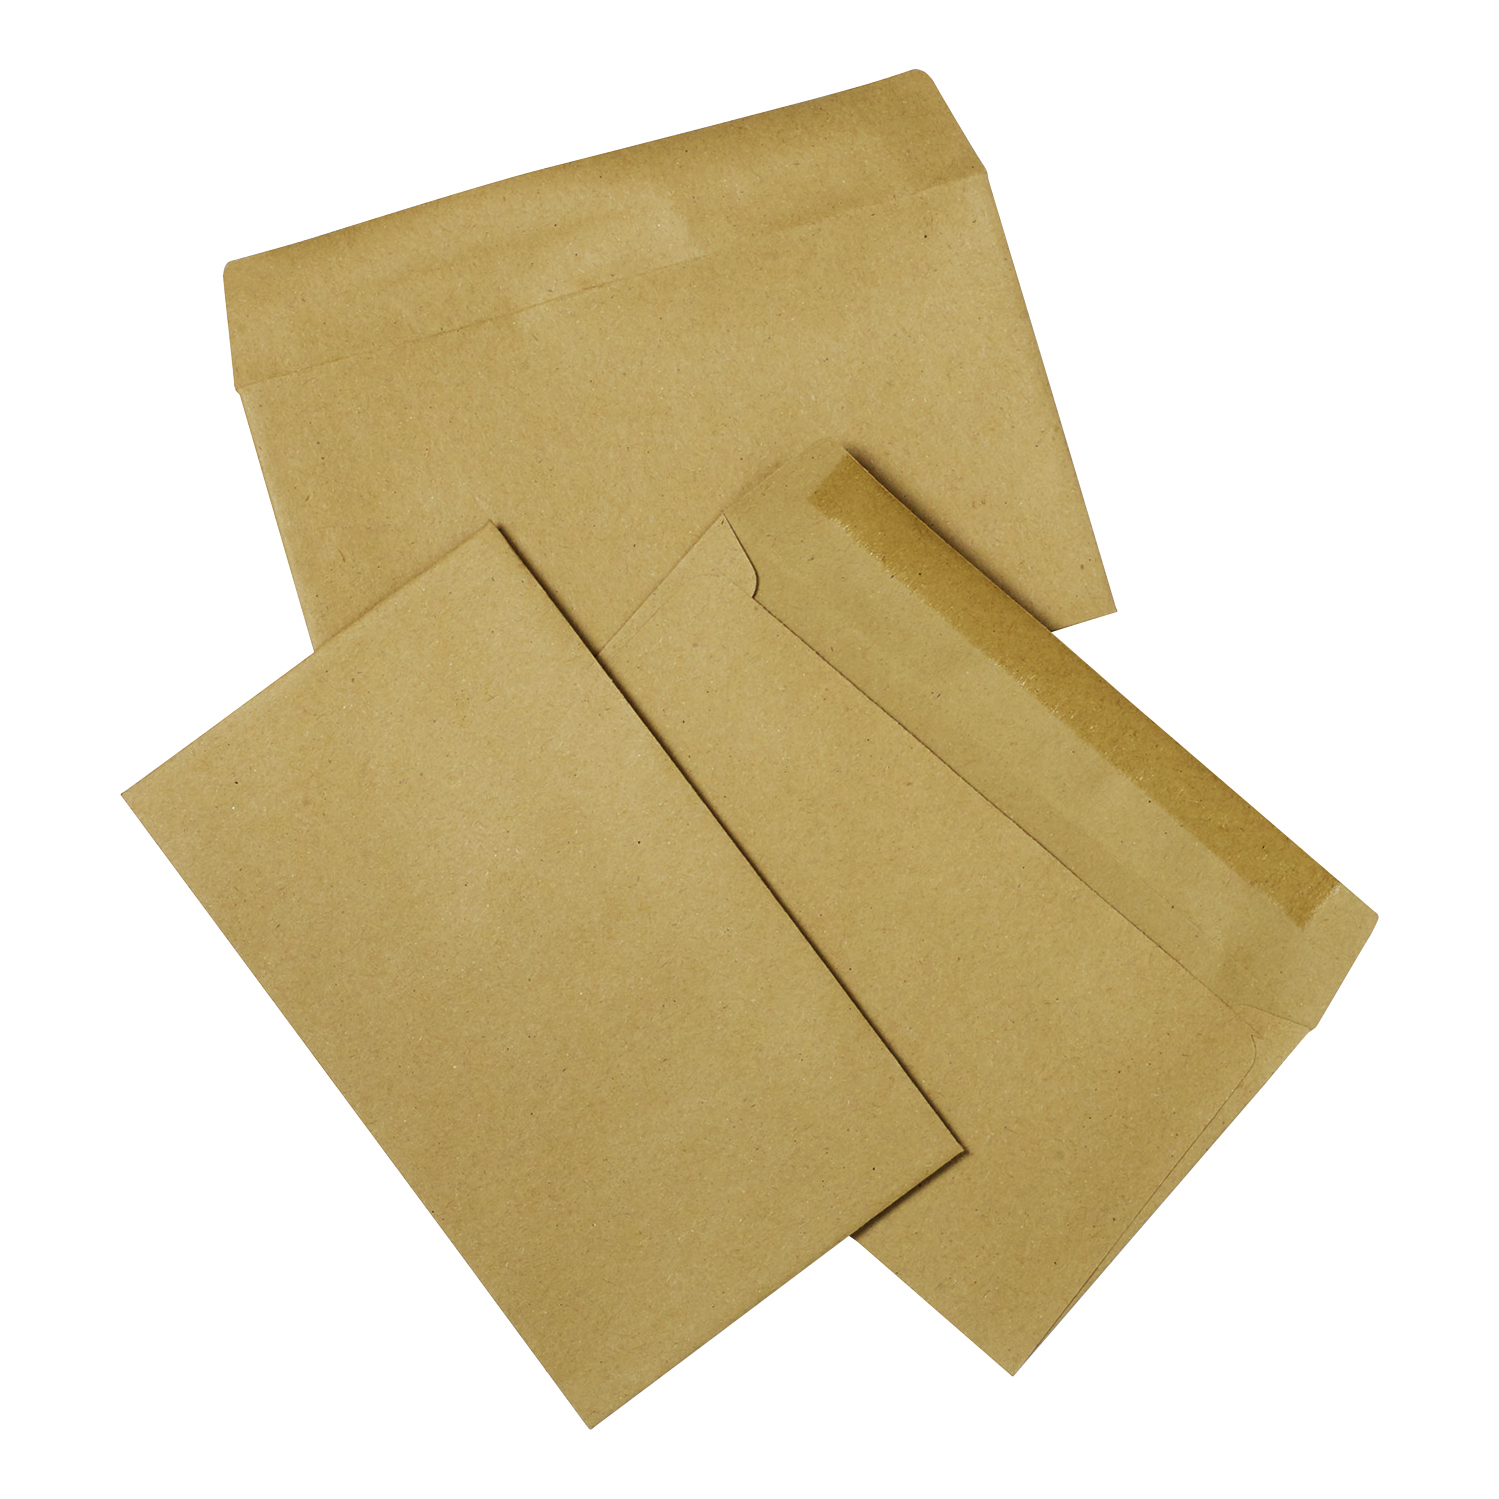 Shades of Blue 5 Star Office Envelopes FSC Recycled Wallet Gummed Lightweight 75gsm 89x152mm Manilla Pack 2000